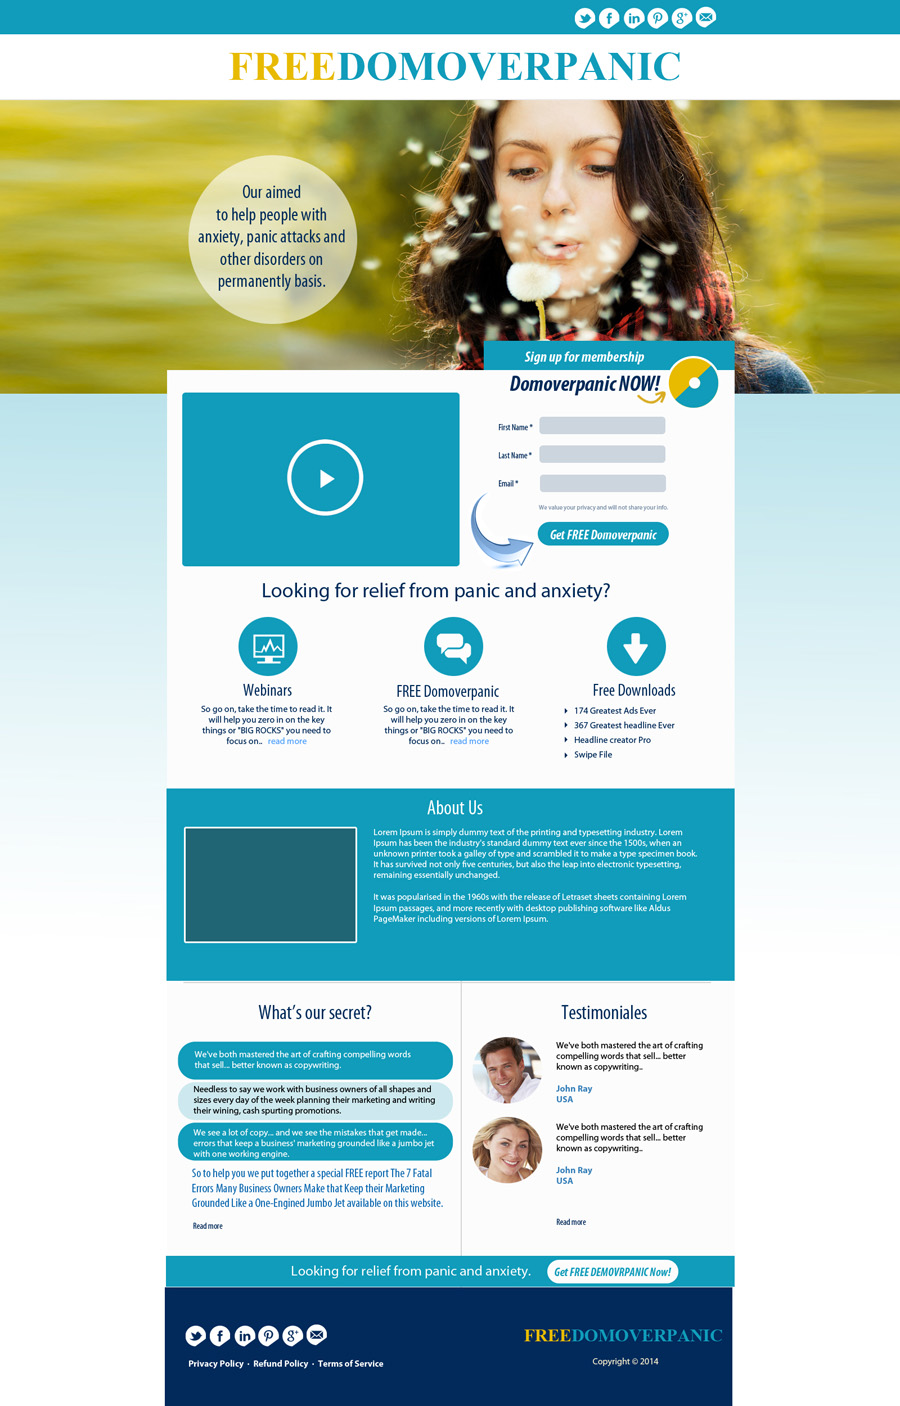 Product Web Design For Meta Training Ou By Uk Design 4628072